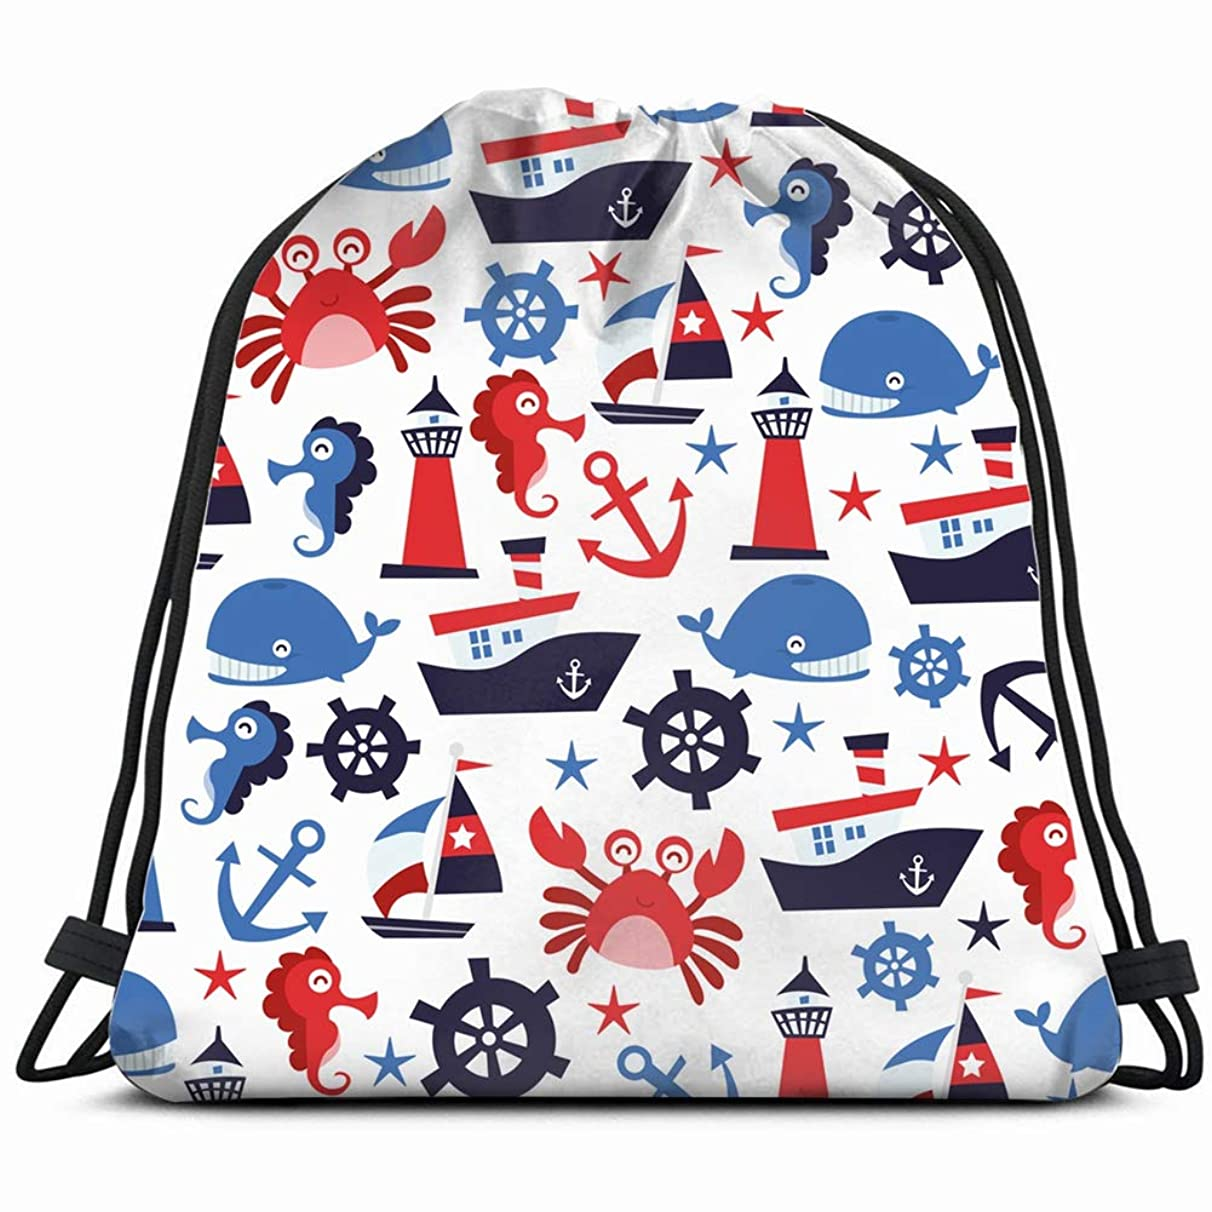 nautical theme parks outdoor Drawstring Backpack Gym Sack Lightweight Bag Water Resistant Gym Backpack for Women&Men for Sports,Travelling,Hiking,Camping,Shopping Yoga